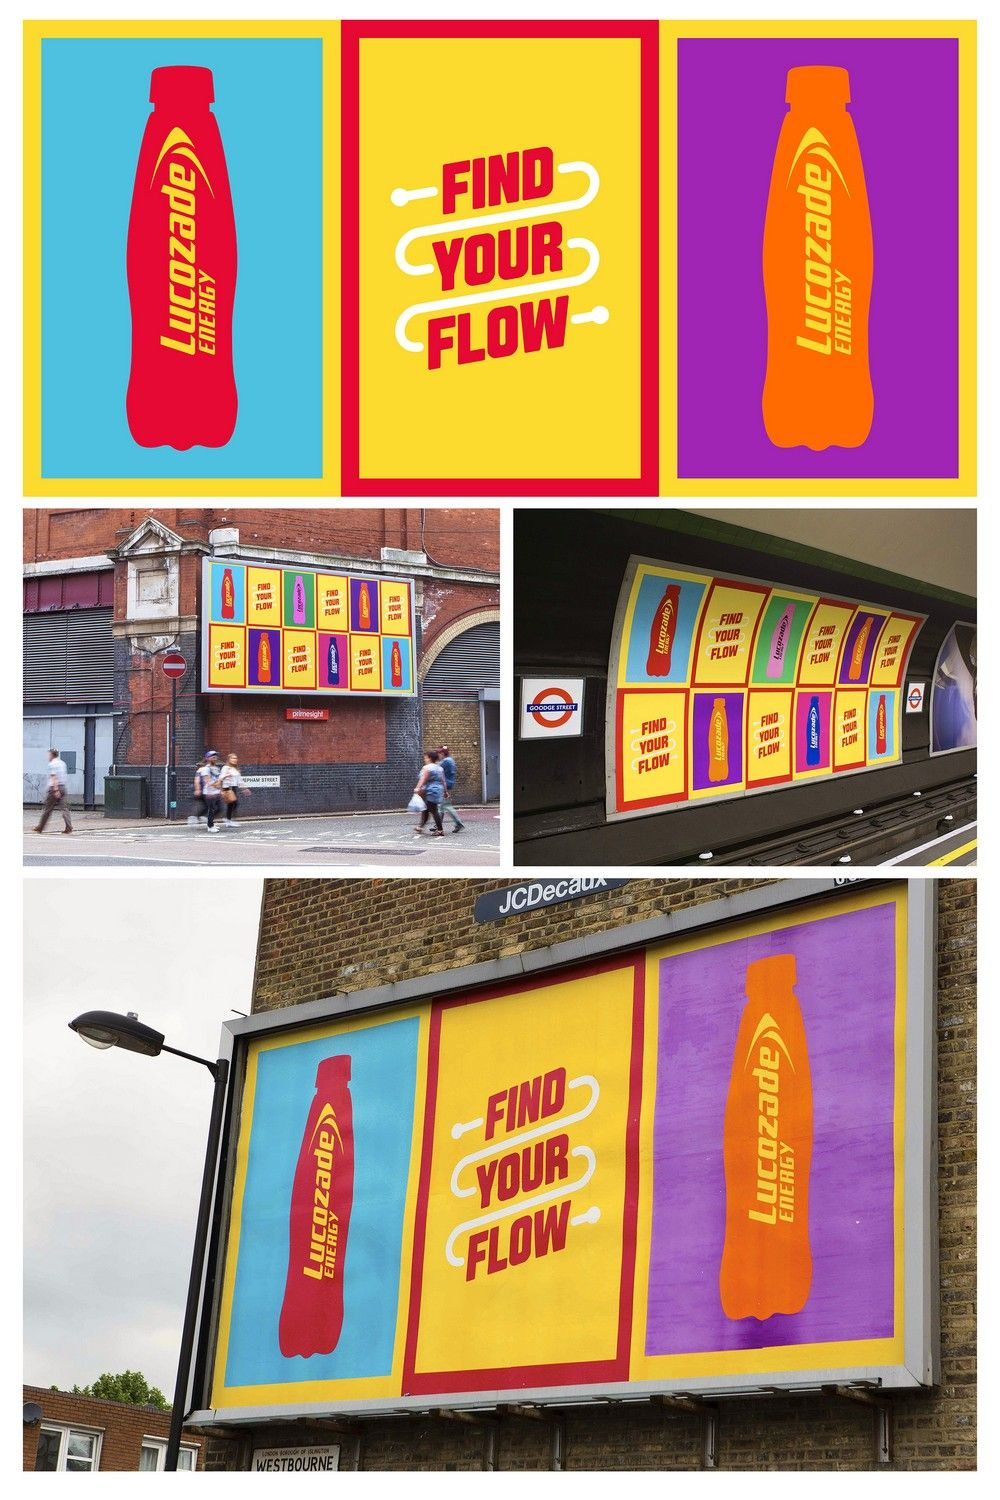 Find Your Flow (Phase 1) by Grey London for Lucozade (Poster Design)